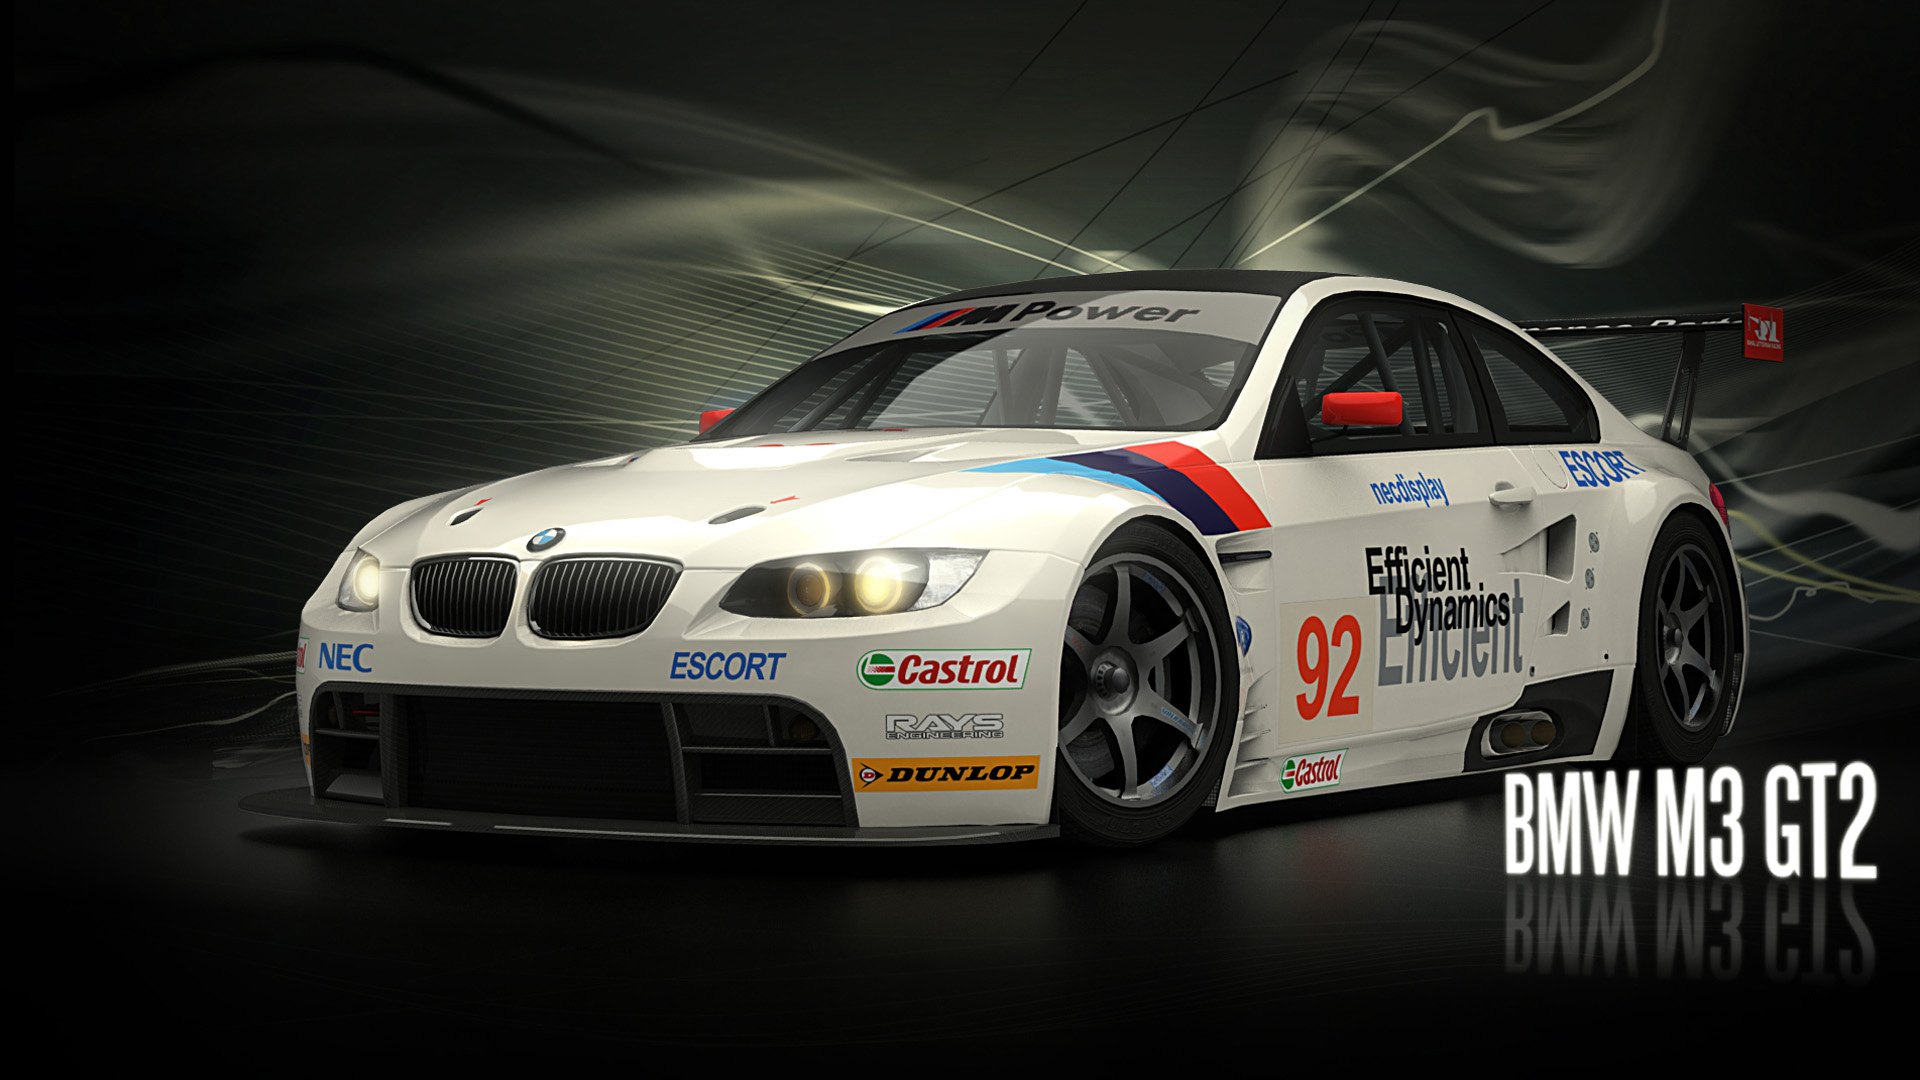 BMW M3 GT2 Sport Wallpapers HD Wallpapers 1920x1080